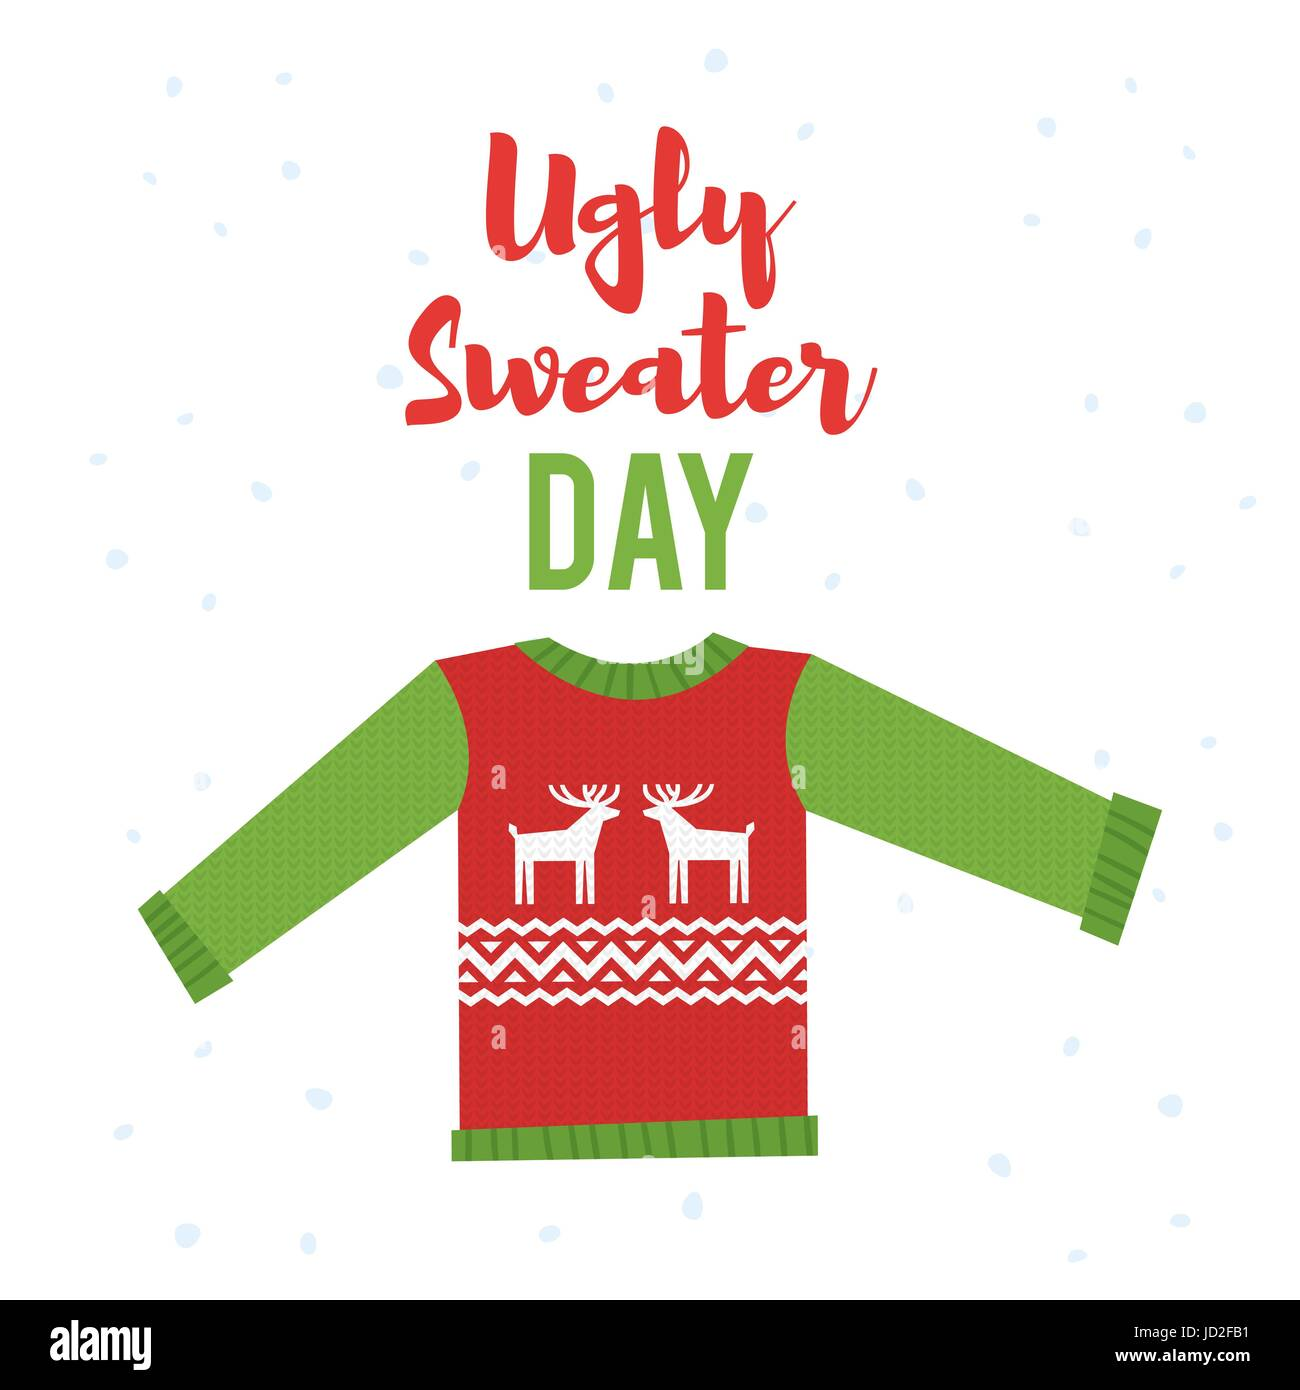 7a066b2bf Vector cartoon style illustration of ugly sweater. Icon for web. Isolated  on white background